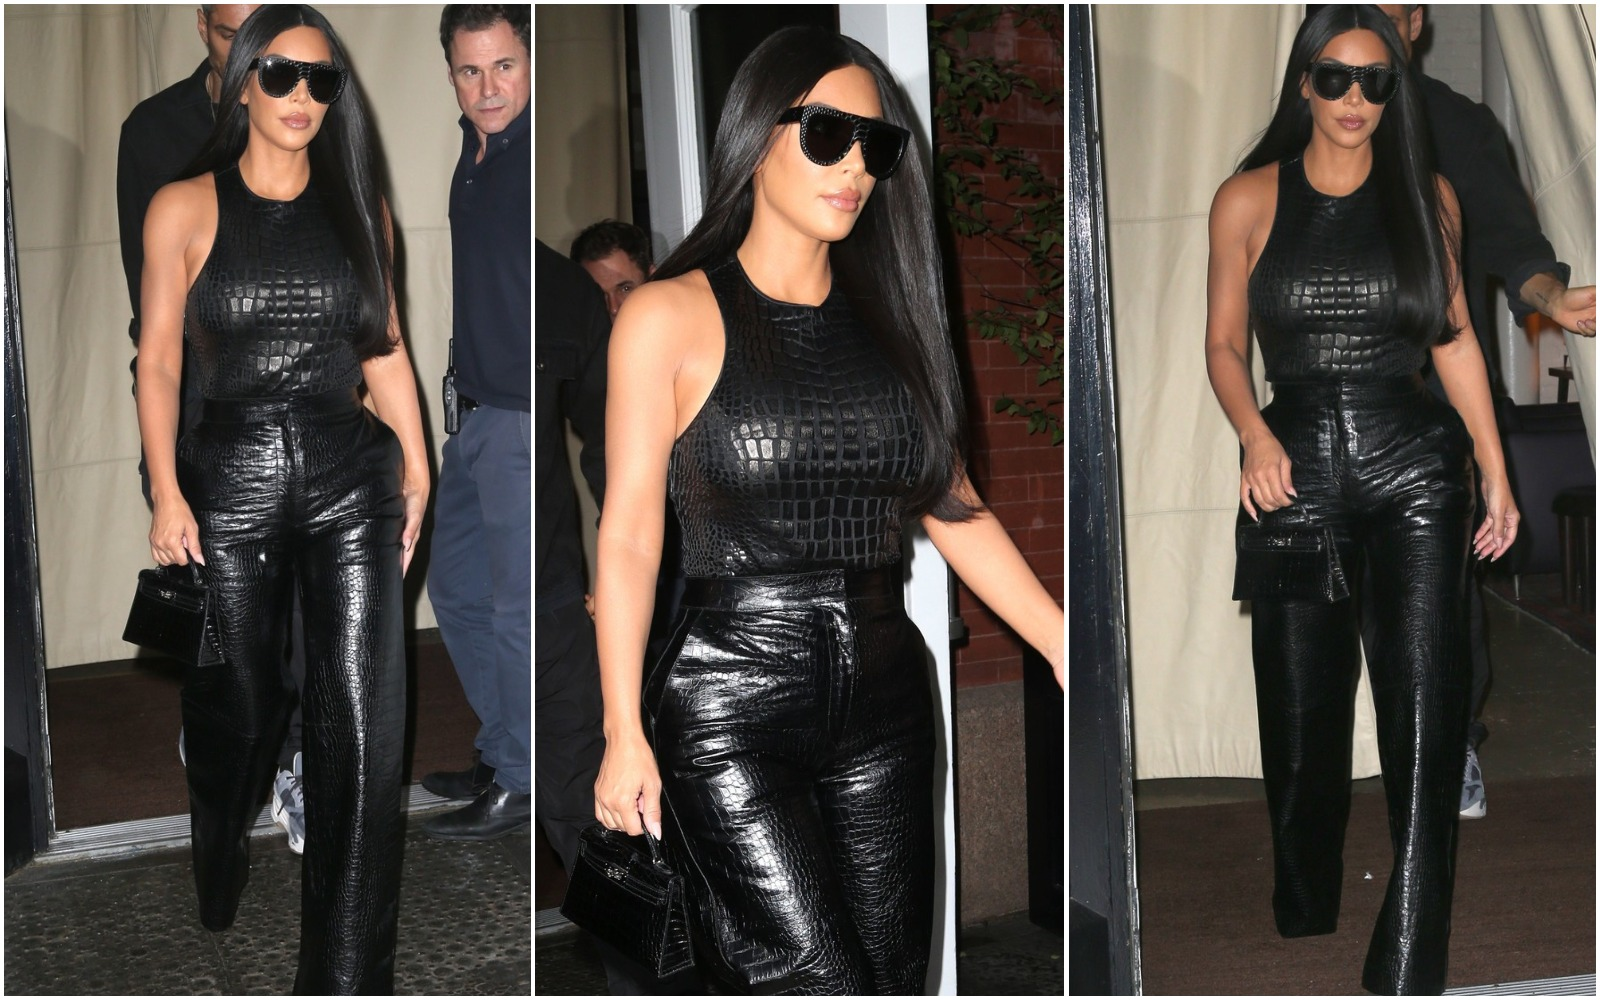 Shop the look - Kim Kardashian